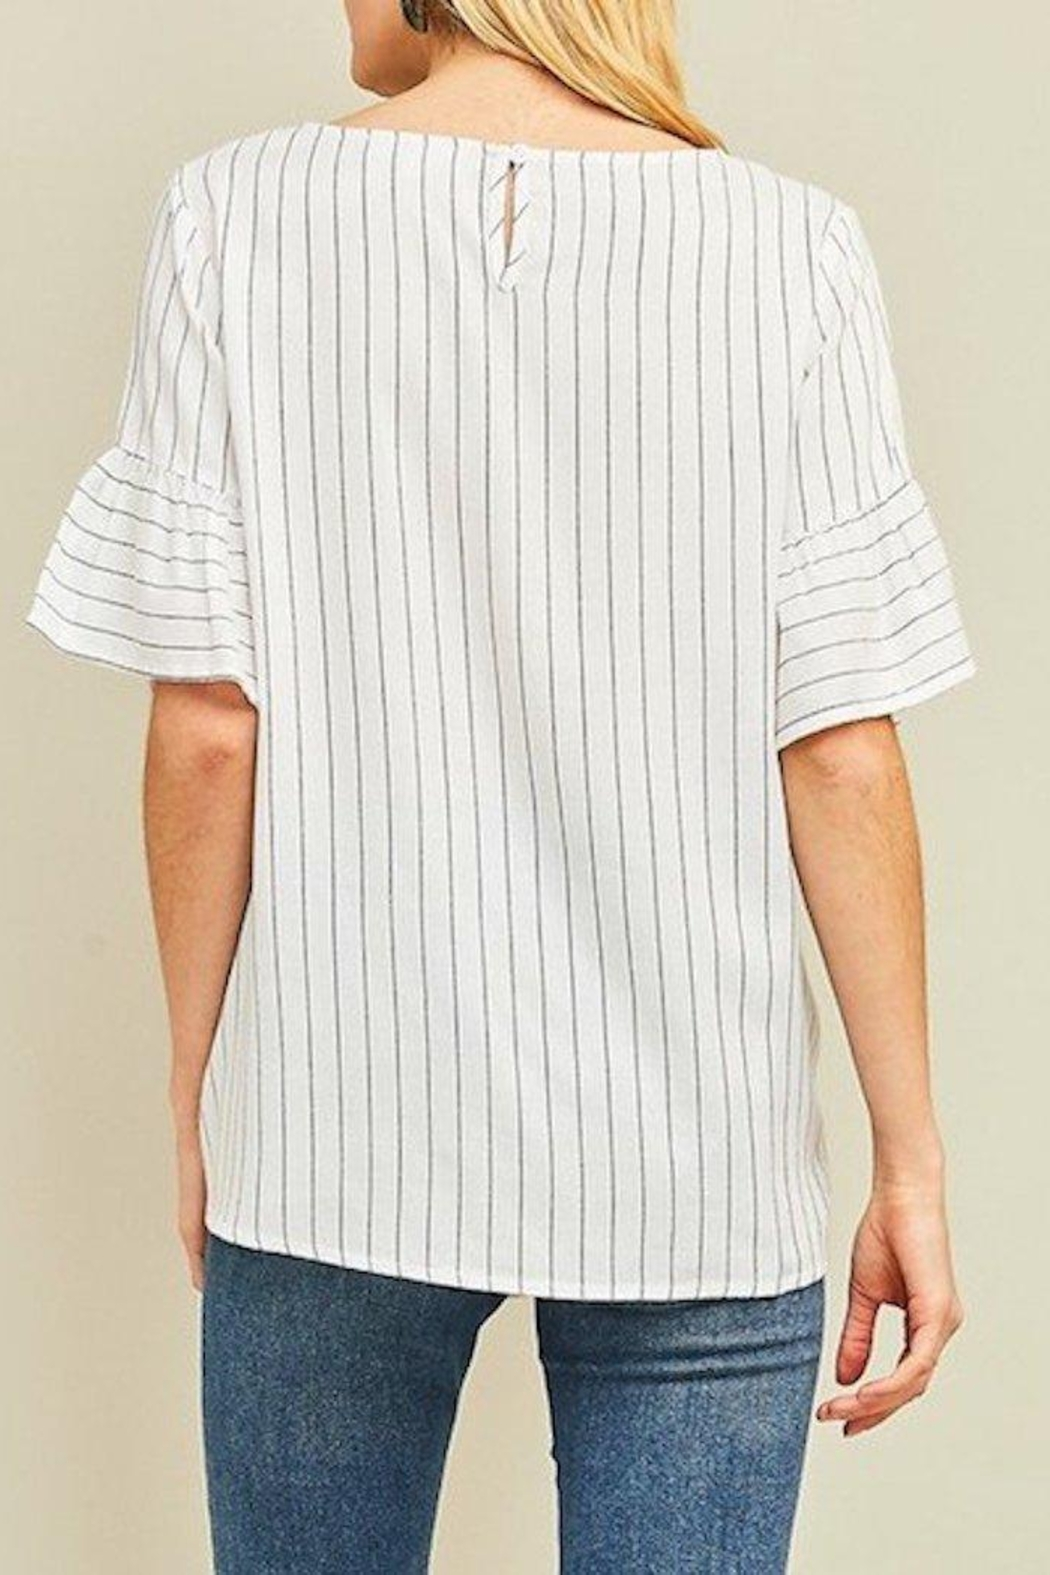 Entro Embroidered Top - Side Cropped Image